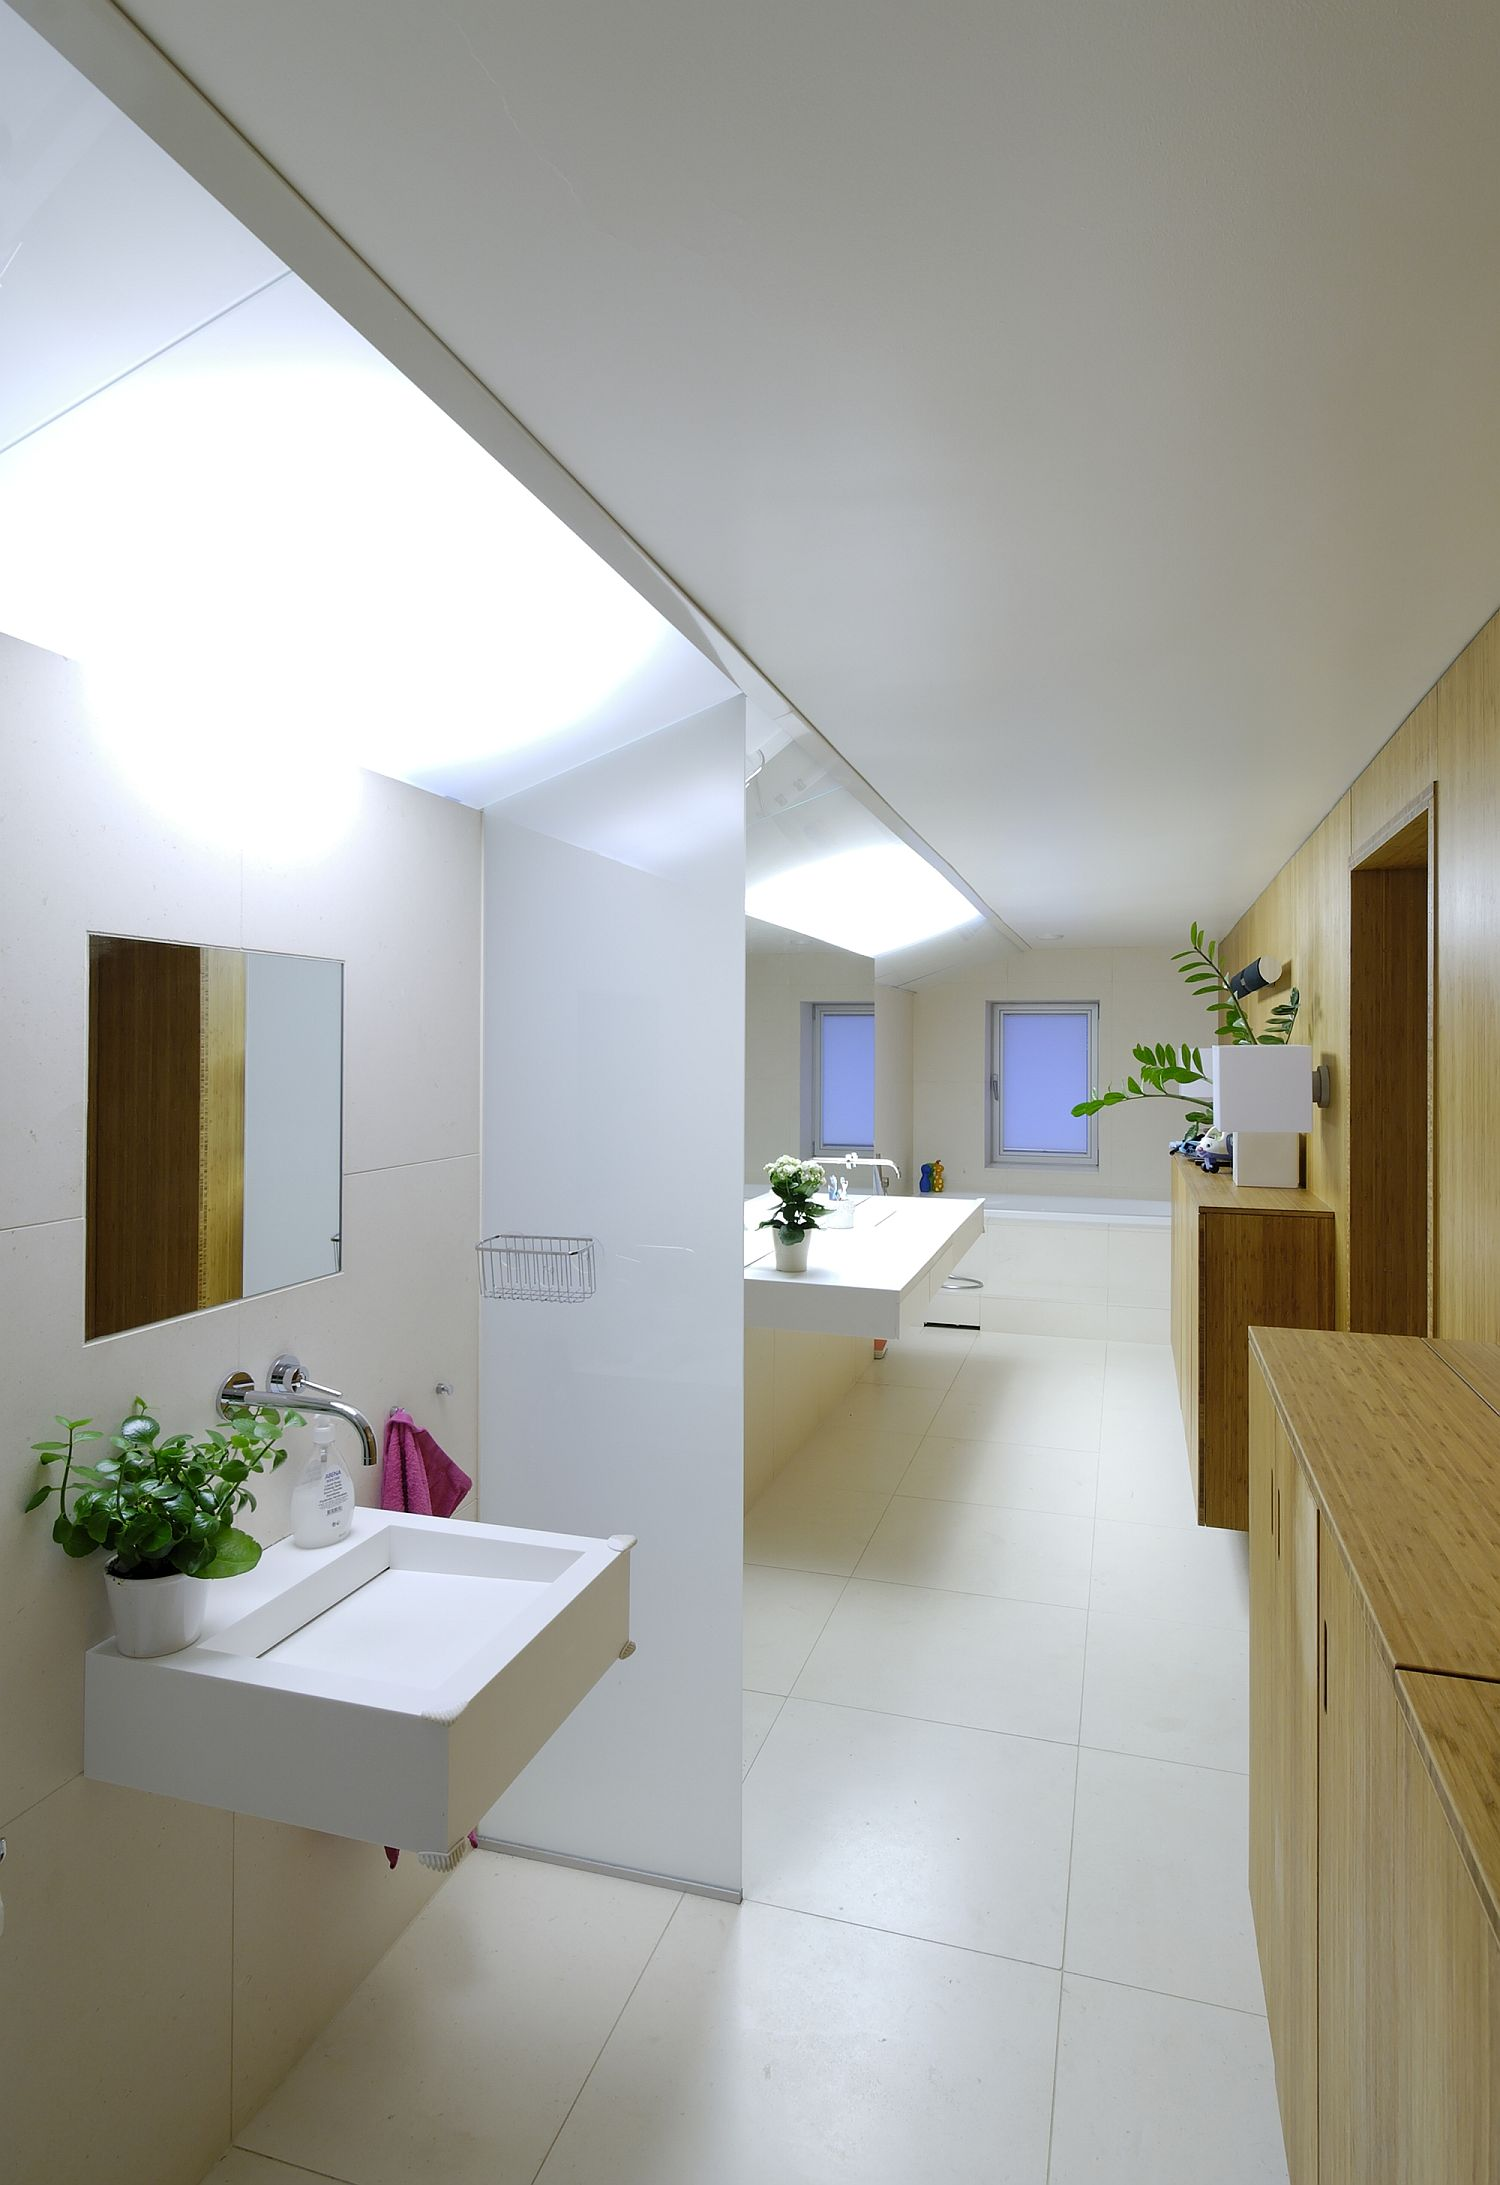 Contemporary bathroom design in white and wood